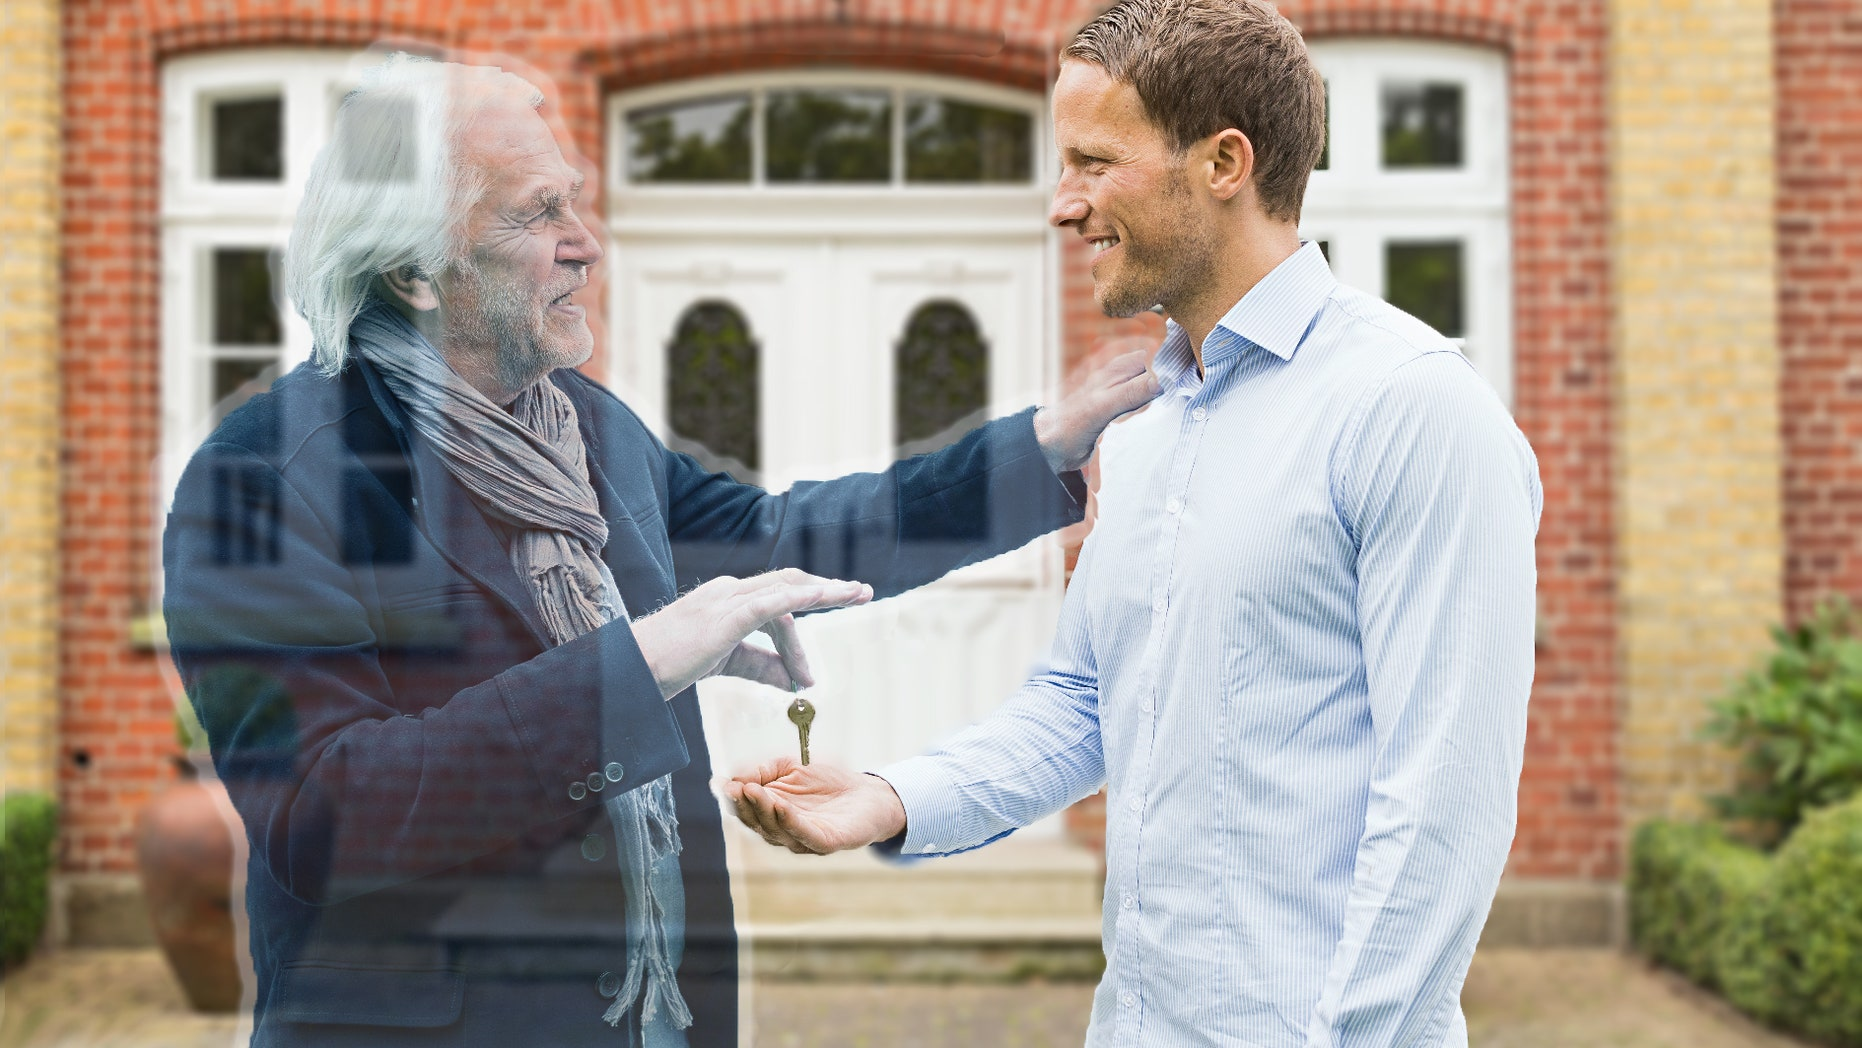 Ghost dad gives house keys to son.